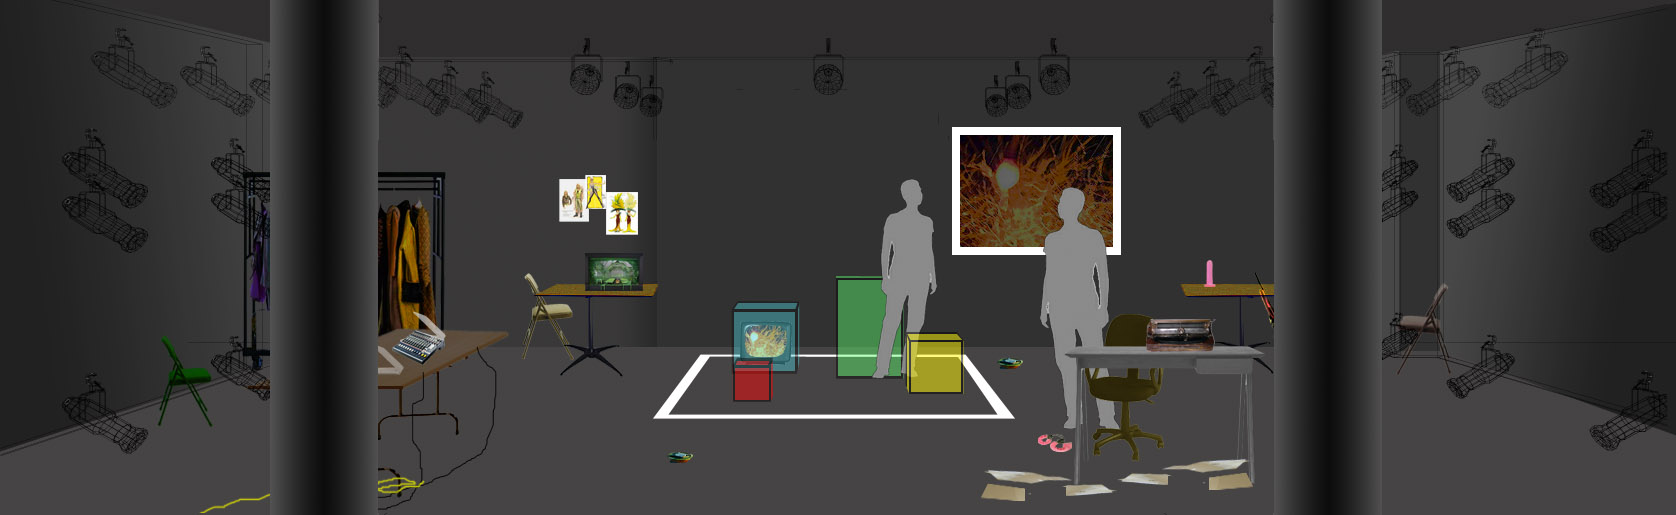 """Rendering of set design for Kyoung H. Park""""Tala"""" at HERE Arts Center, July 2012. Set Designer: Marie Yokoyama 